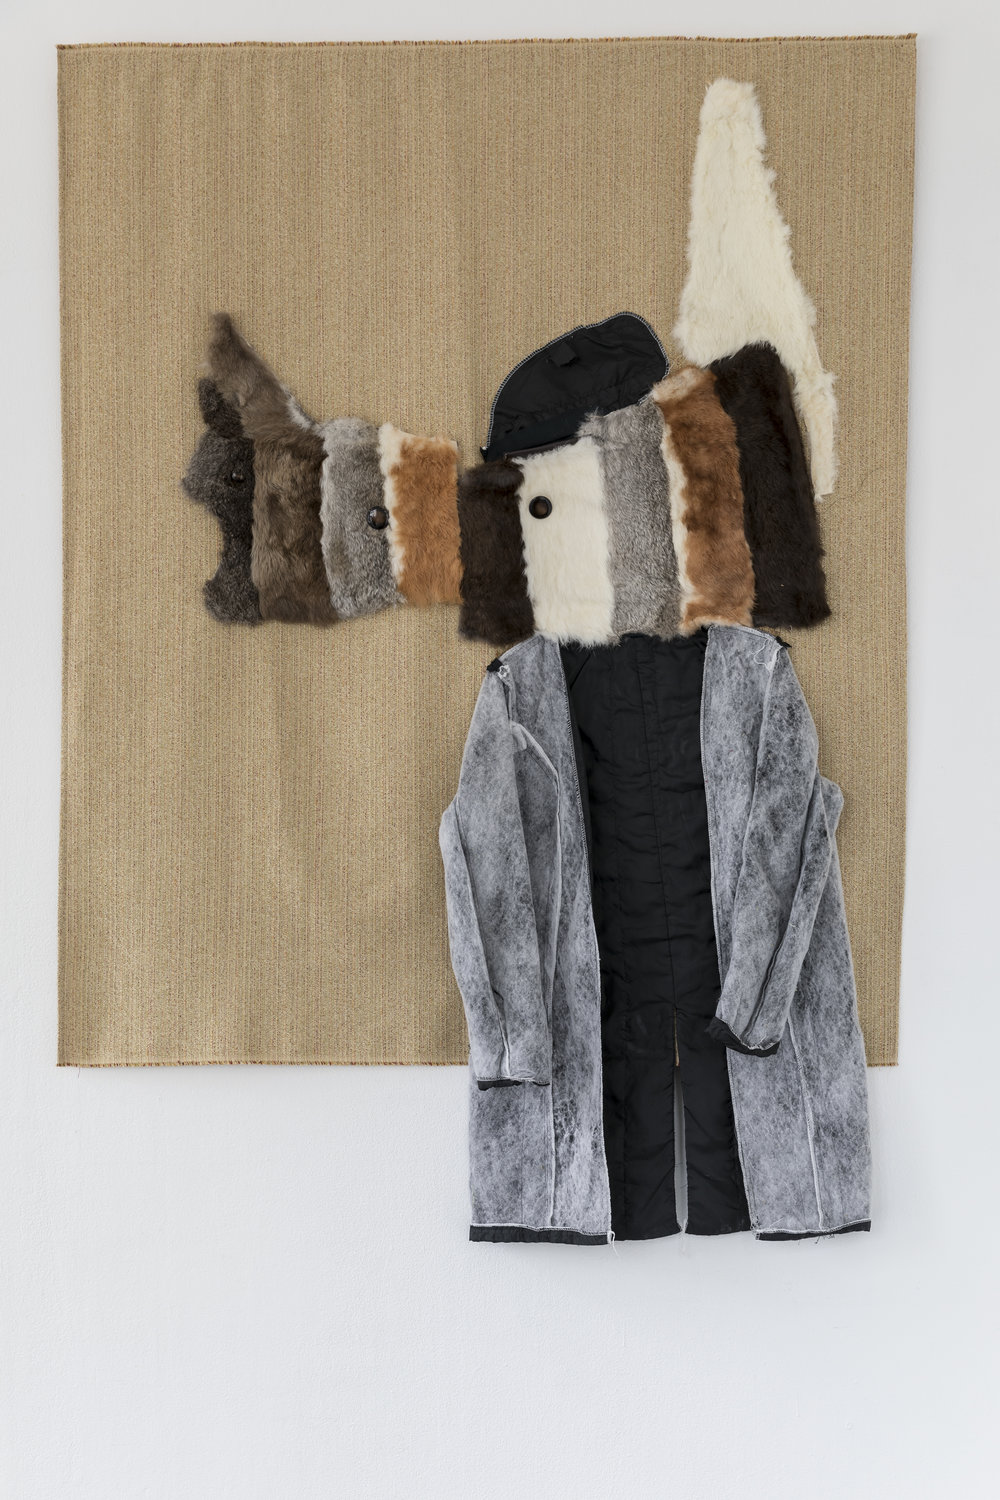 Mindy Rose Schwartz,  Canine Rabbit , 2018. Fur, lining, fabric